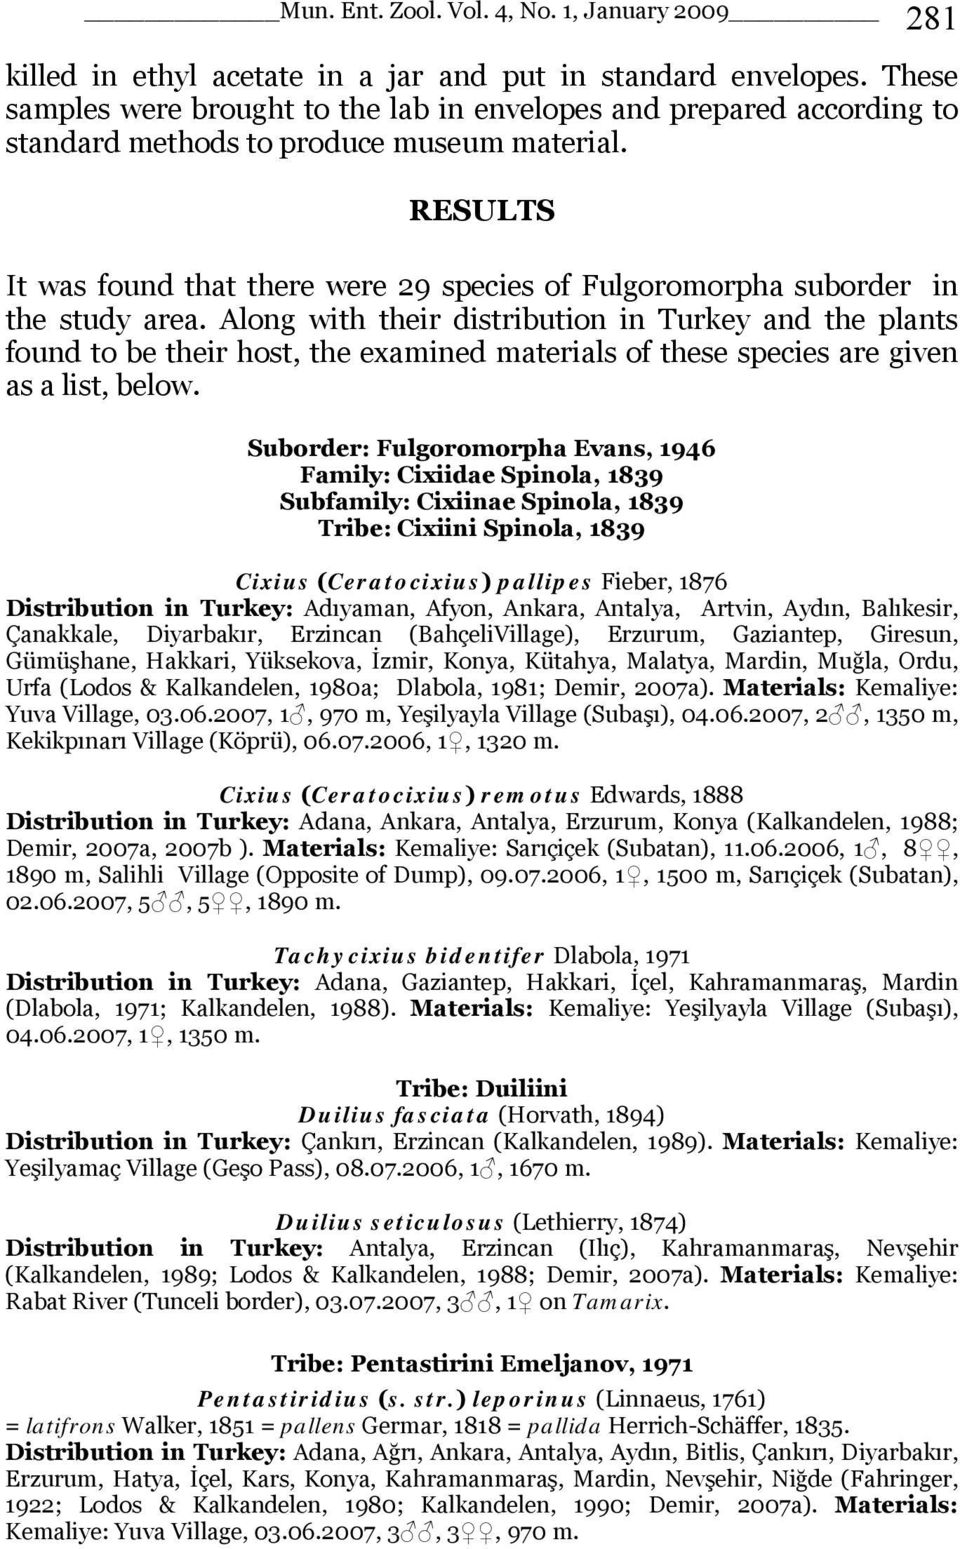 Along with their distribution in Turkey and the plants found to be their host, the examined materials of these species are given as a list, below.